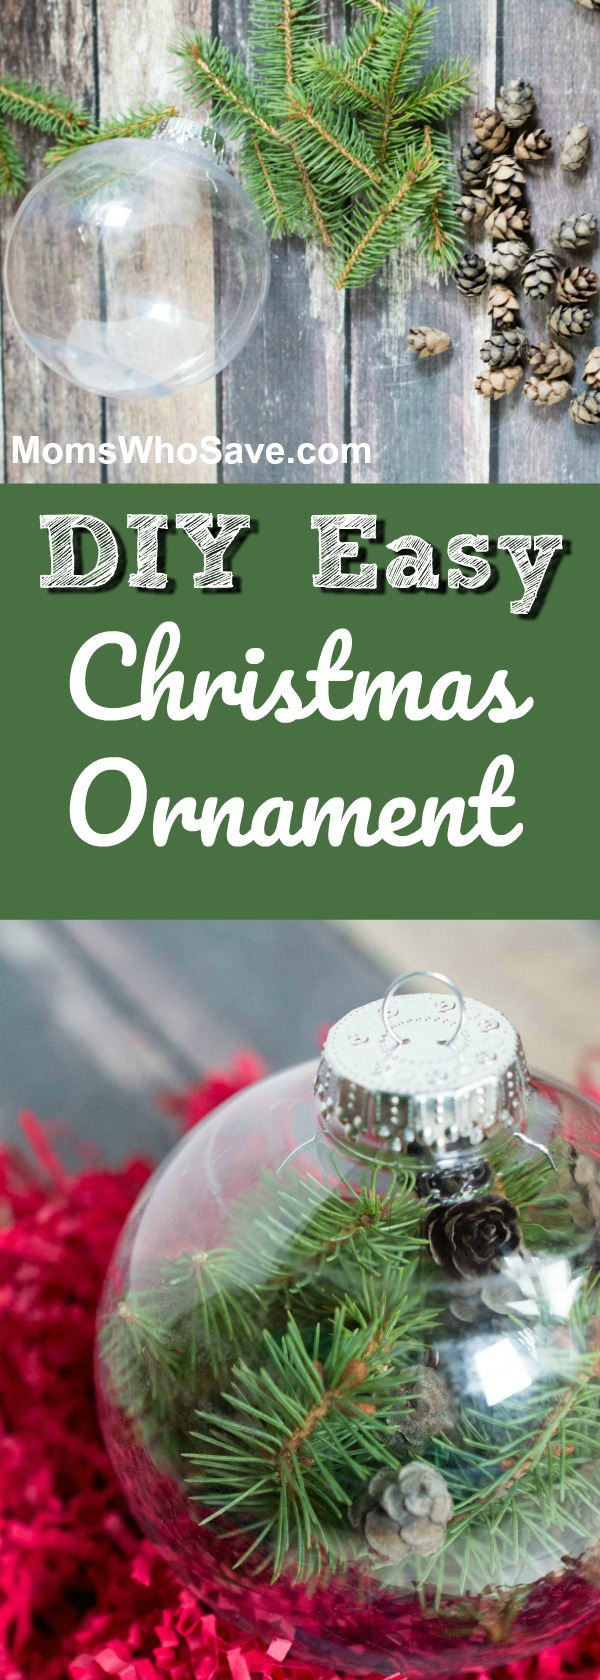 diy pine tree christmas ornament